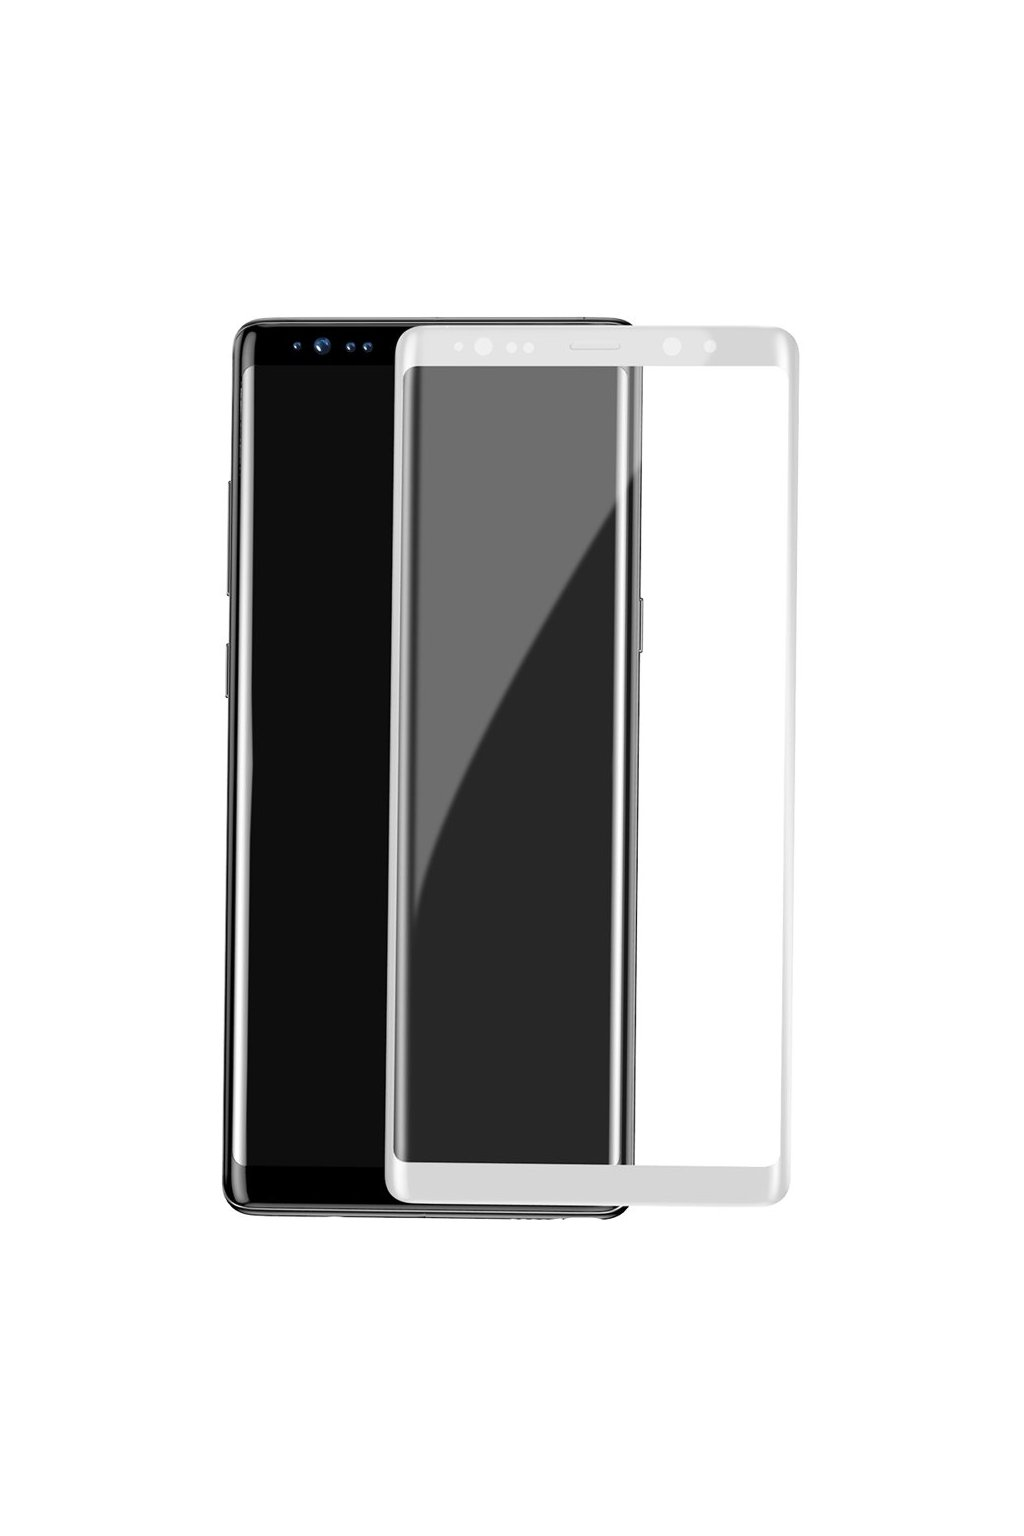 eng pl Baseus 3D Arc Tempered Glass Film Full Screen Protector with Silk Screen Rim Samsung Galaxy Note 8 G950 white SGSANOTE8 3D02 25590 1